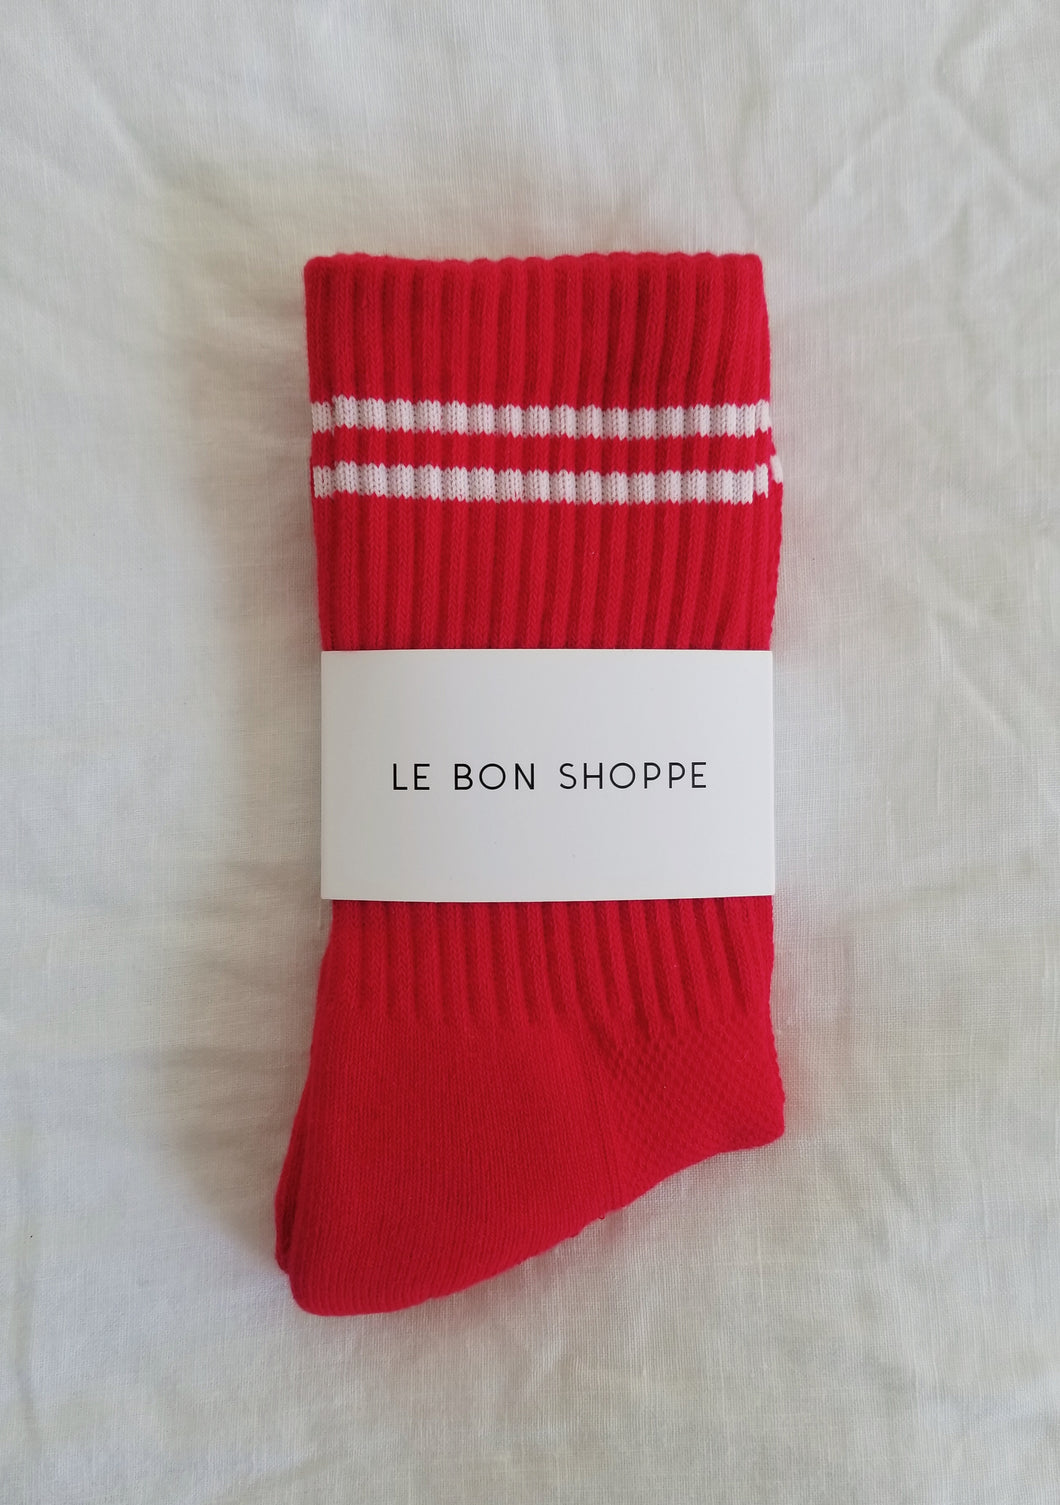 Boyfriend Socks - Red